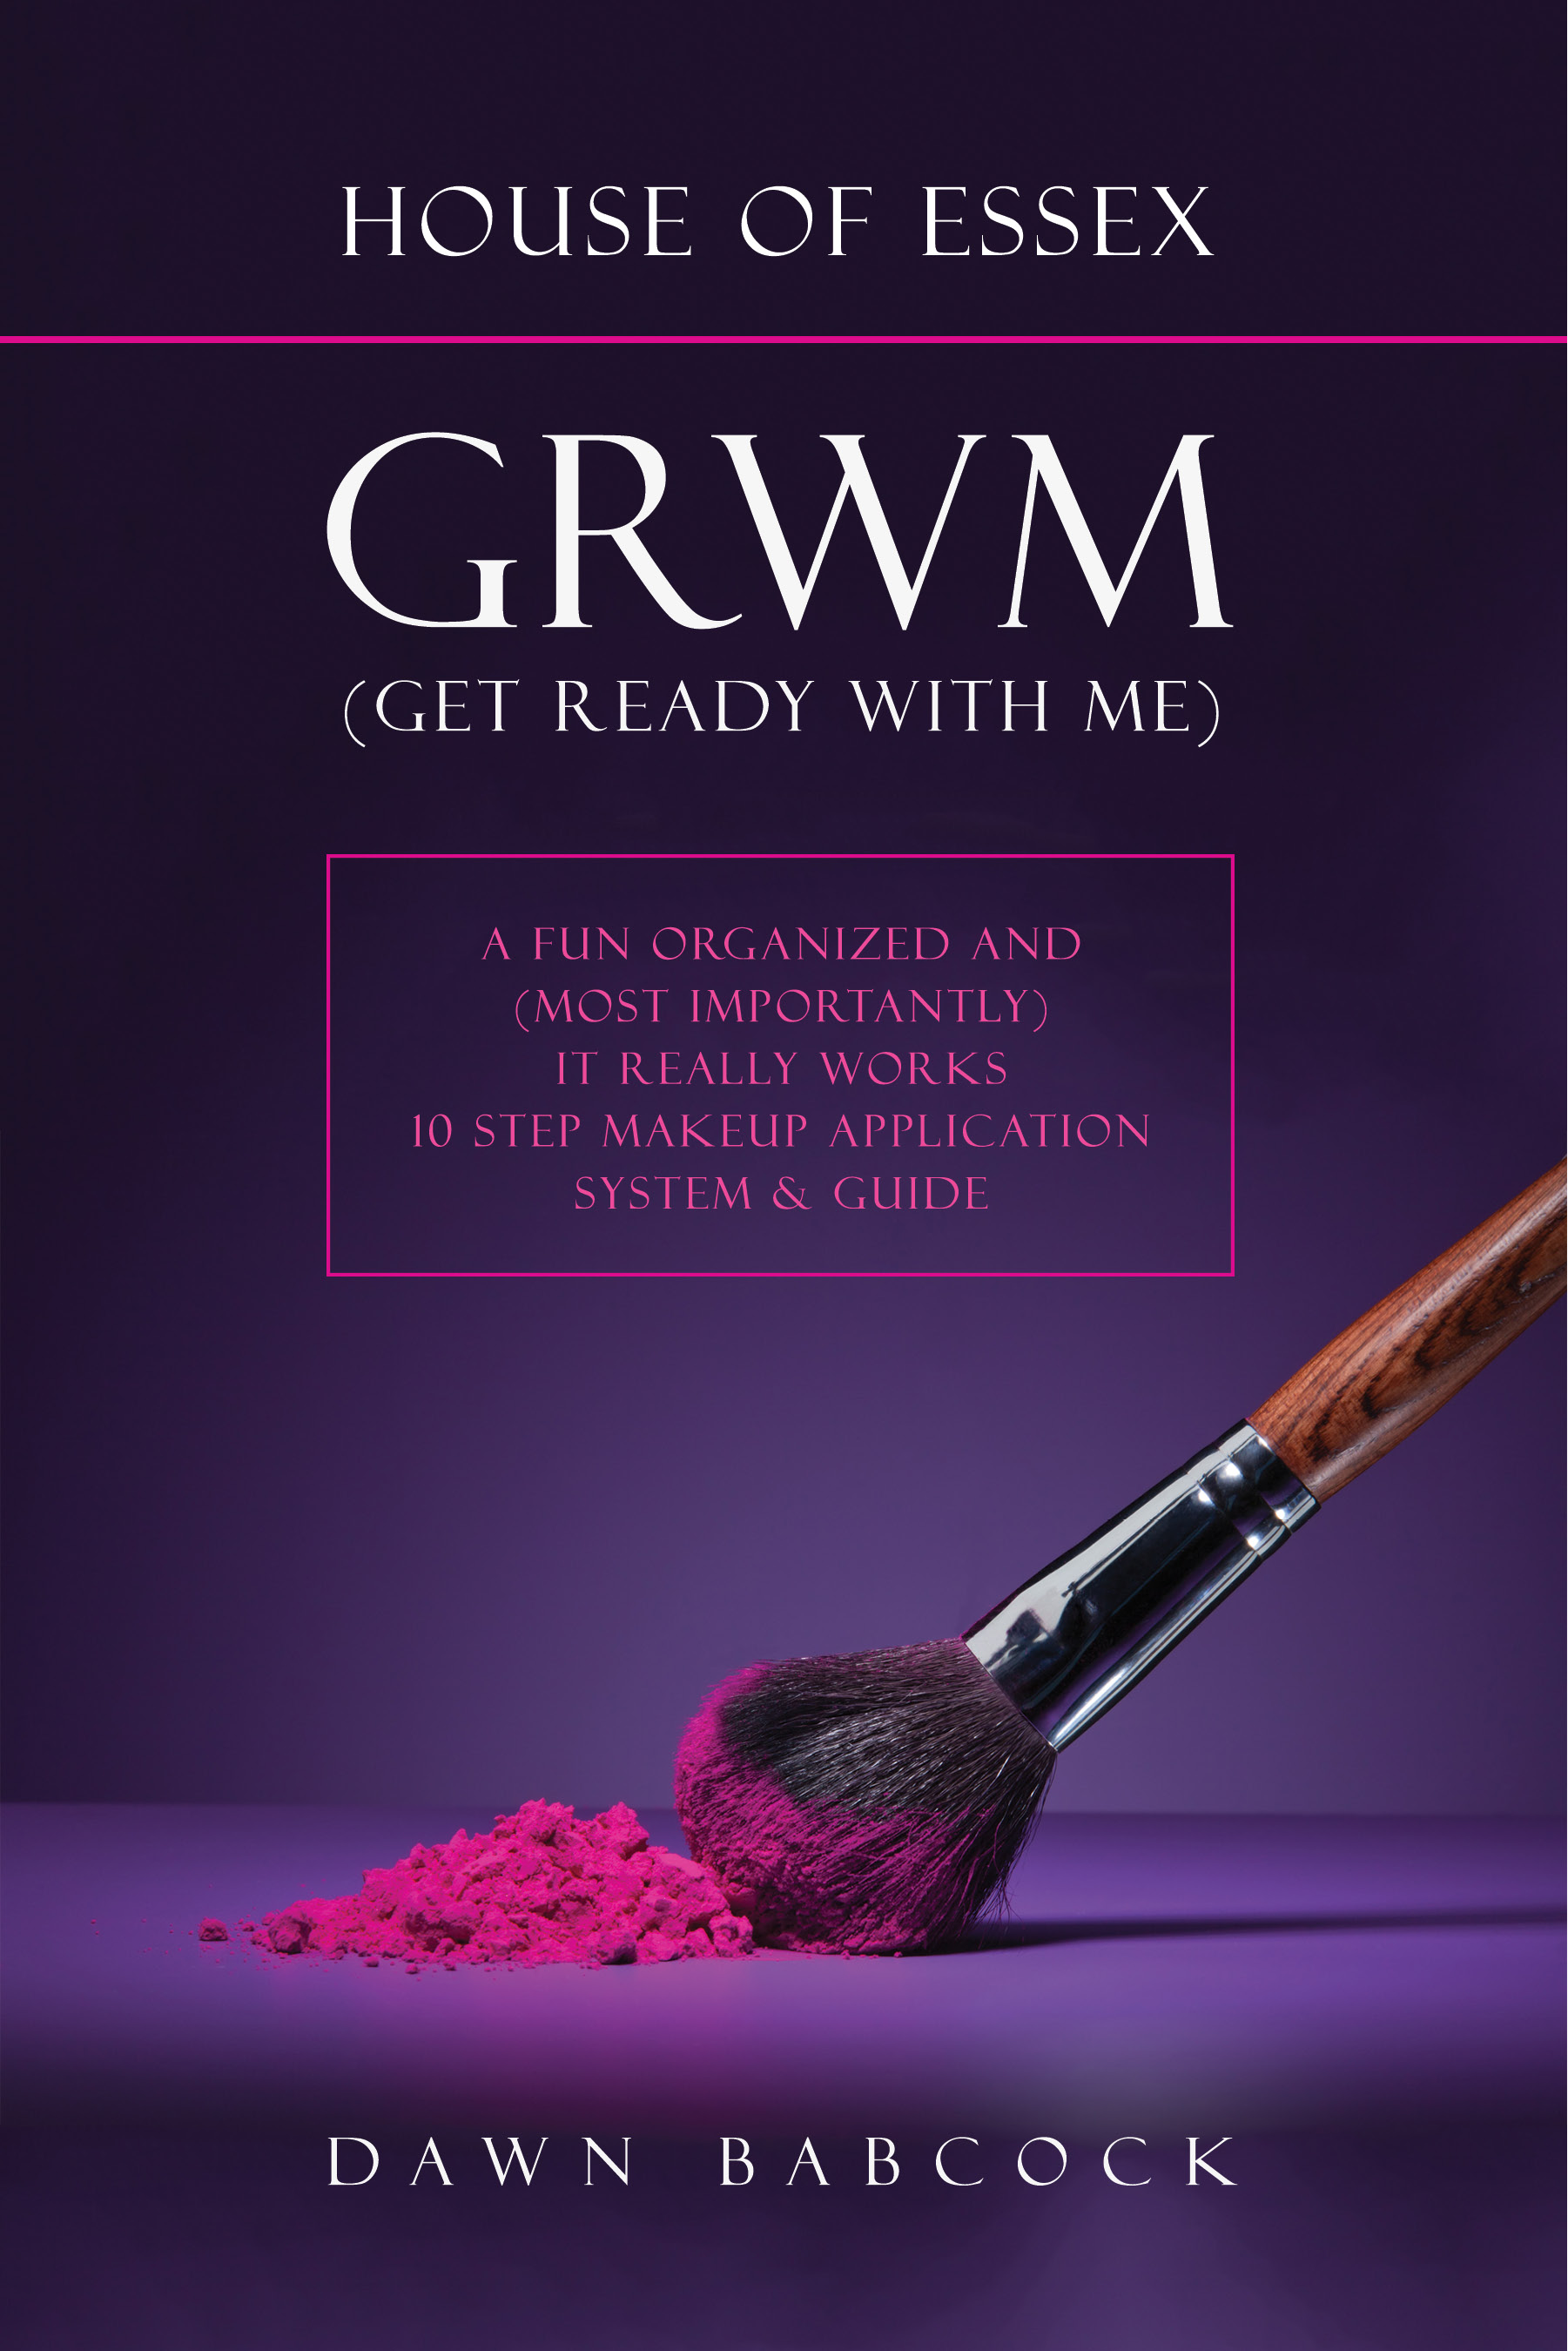 Smashwords House Of Essex Grwm Get Ready With Me A Book By Dawn Babcock It is an abbreviation used to tell someone that you are leaving and will see them this page explains what the abbreviation cya means. house of essex grwm get ready with me an ebook by dawn babcock